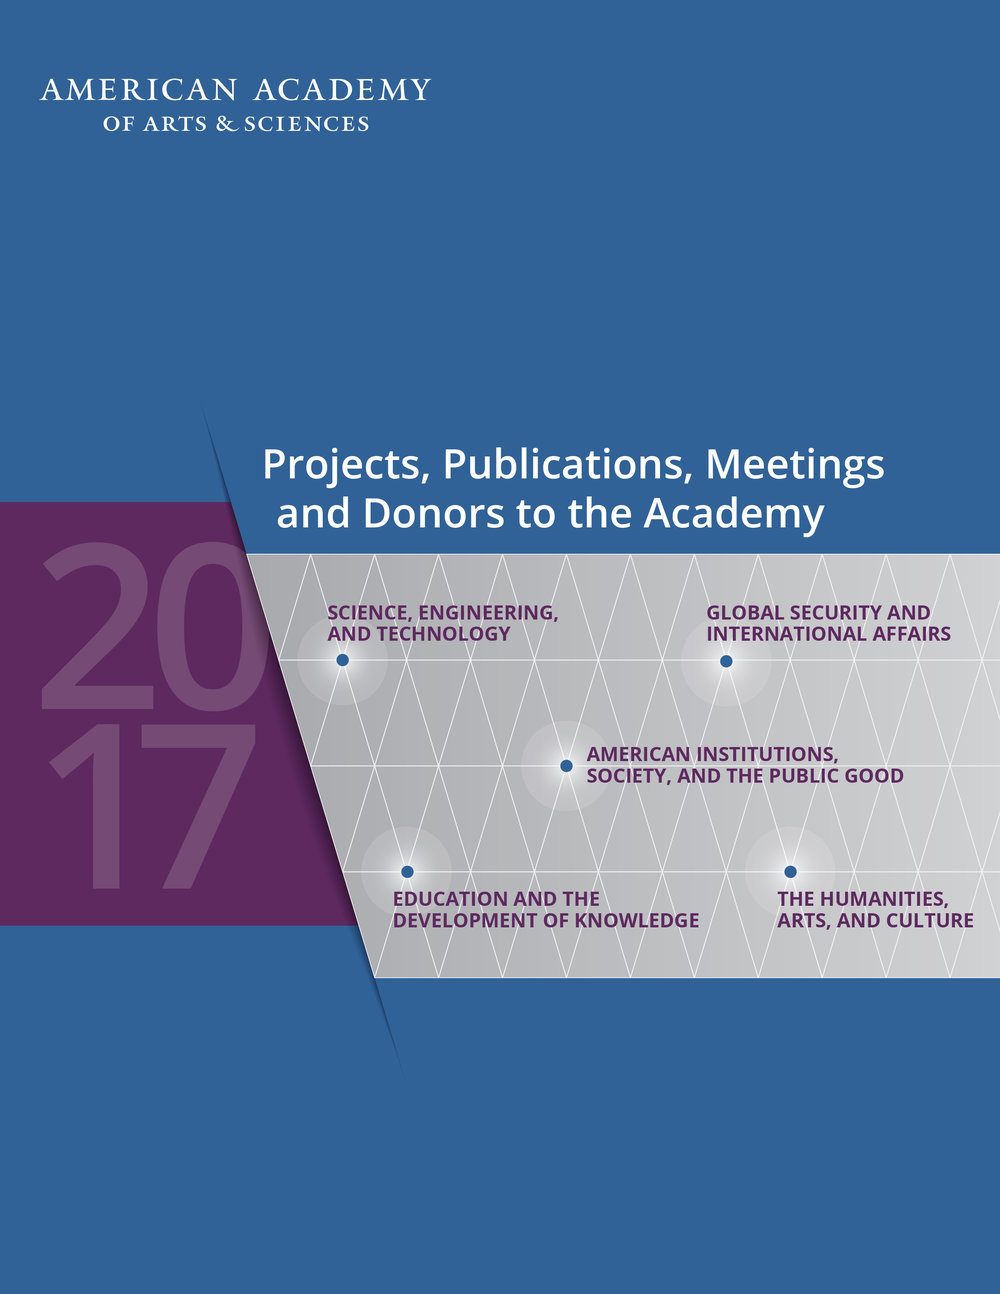 2017 Projects, Publications, Meetings and Donors to the Academy